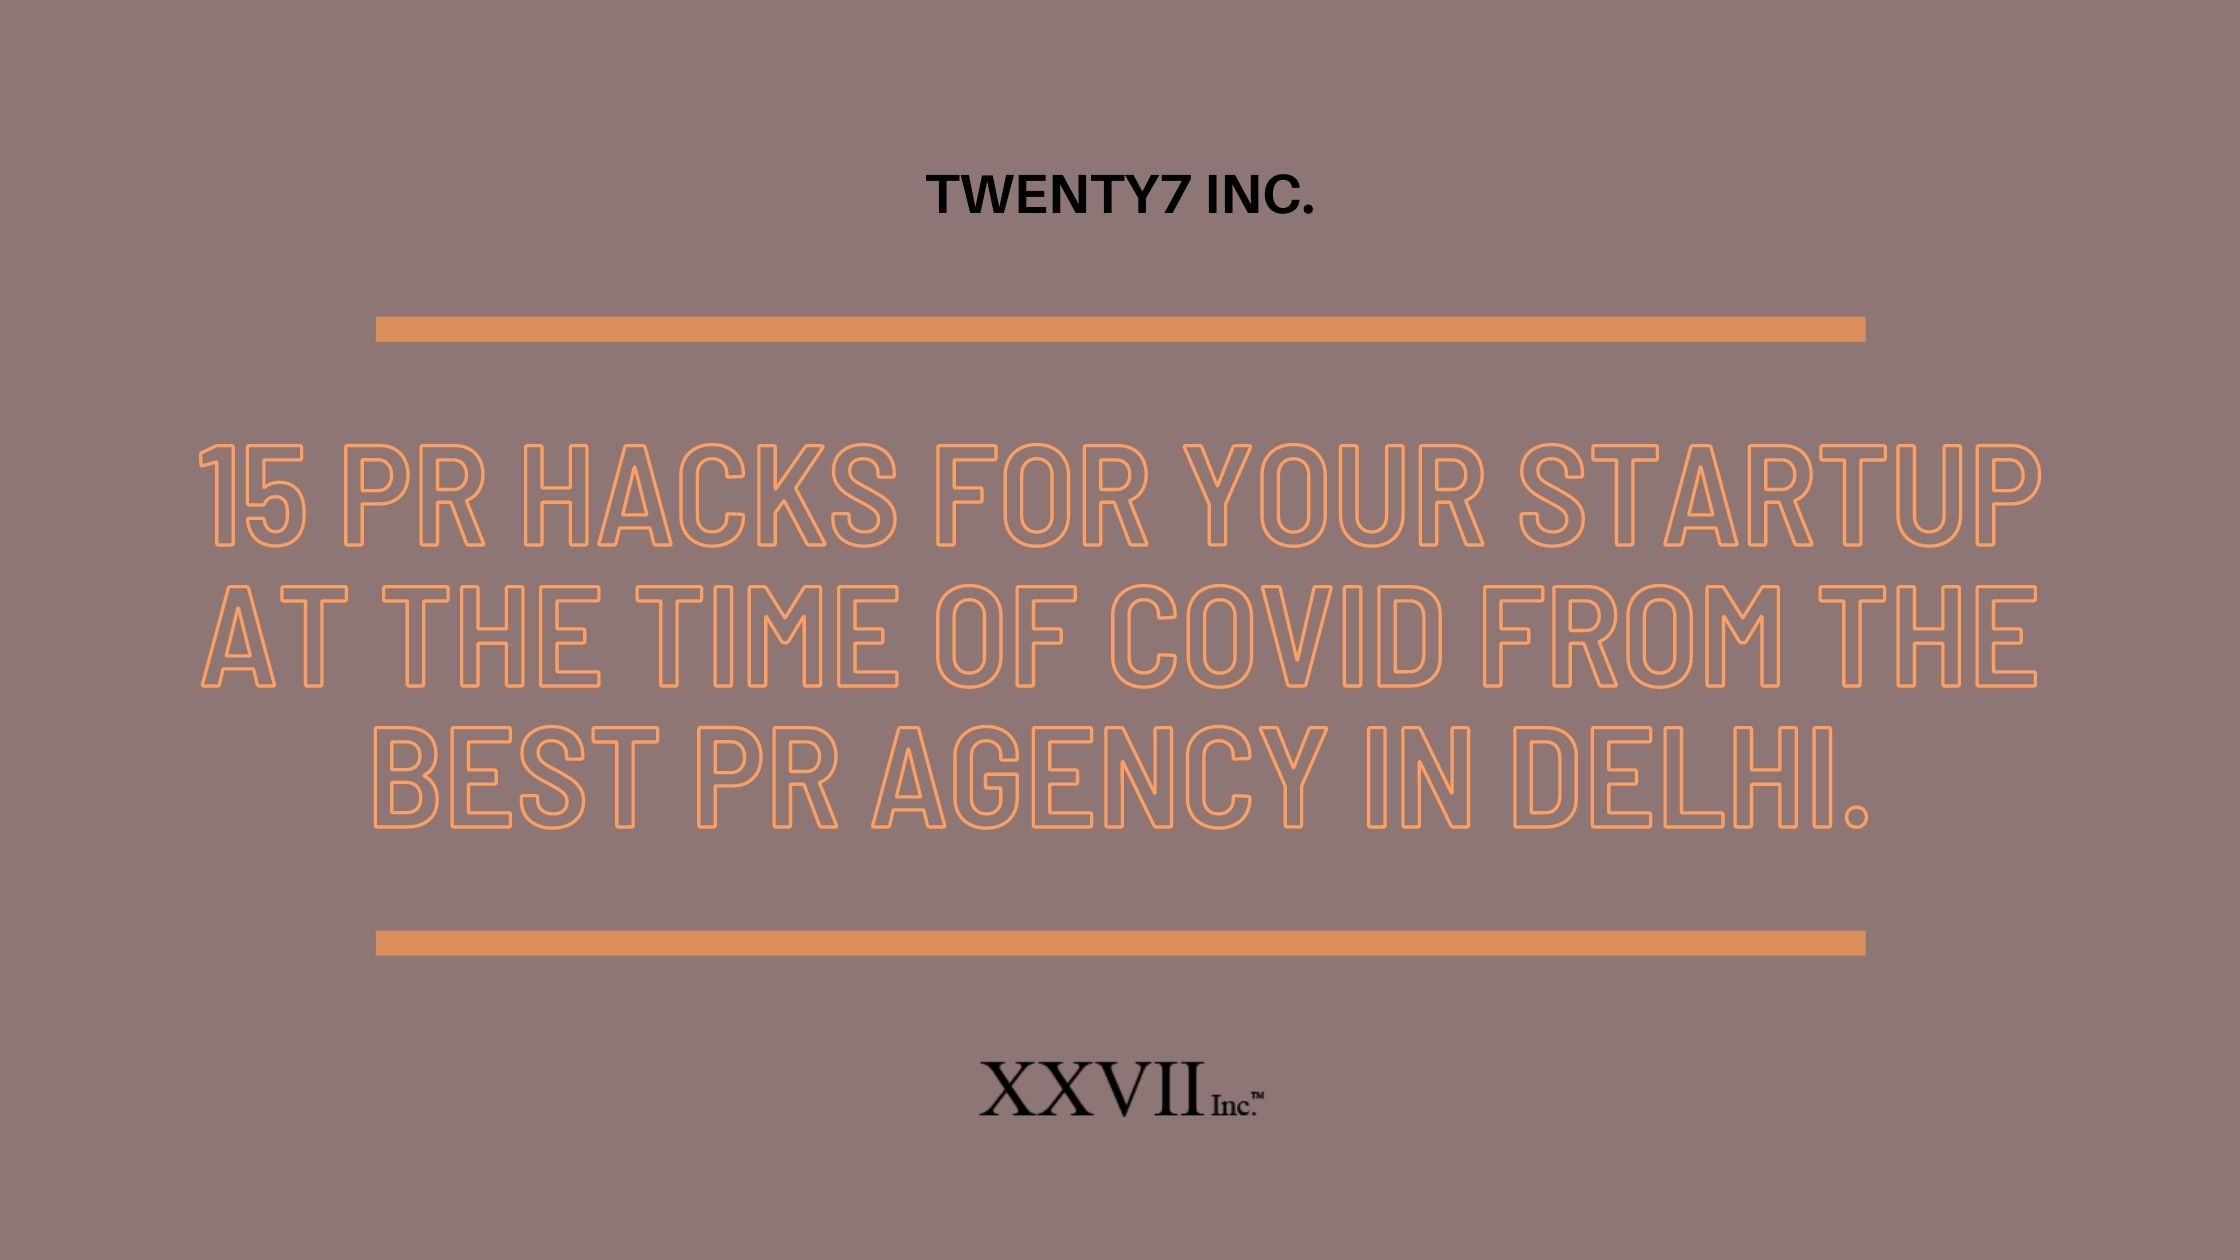 15 PR Hacks For Your Startup At The Time Of COVID From The Best PR Agency In Delhi.